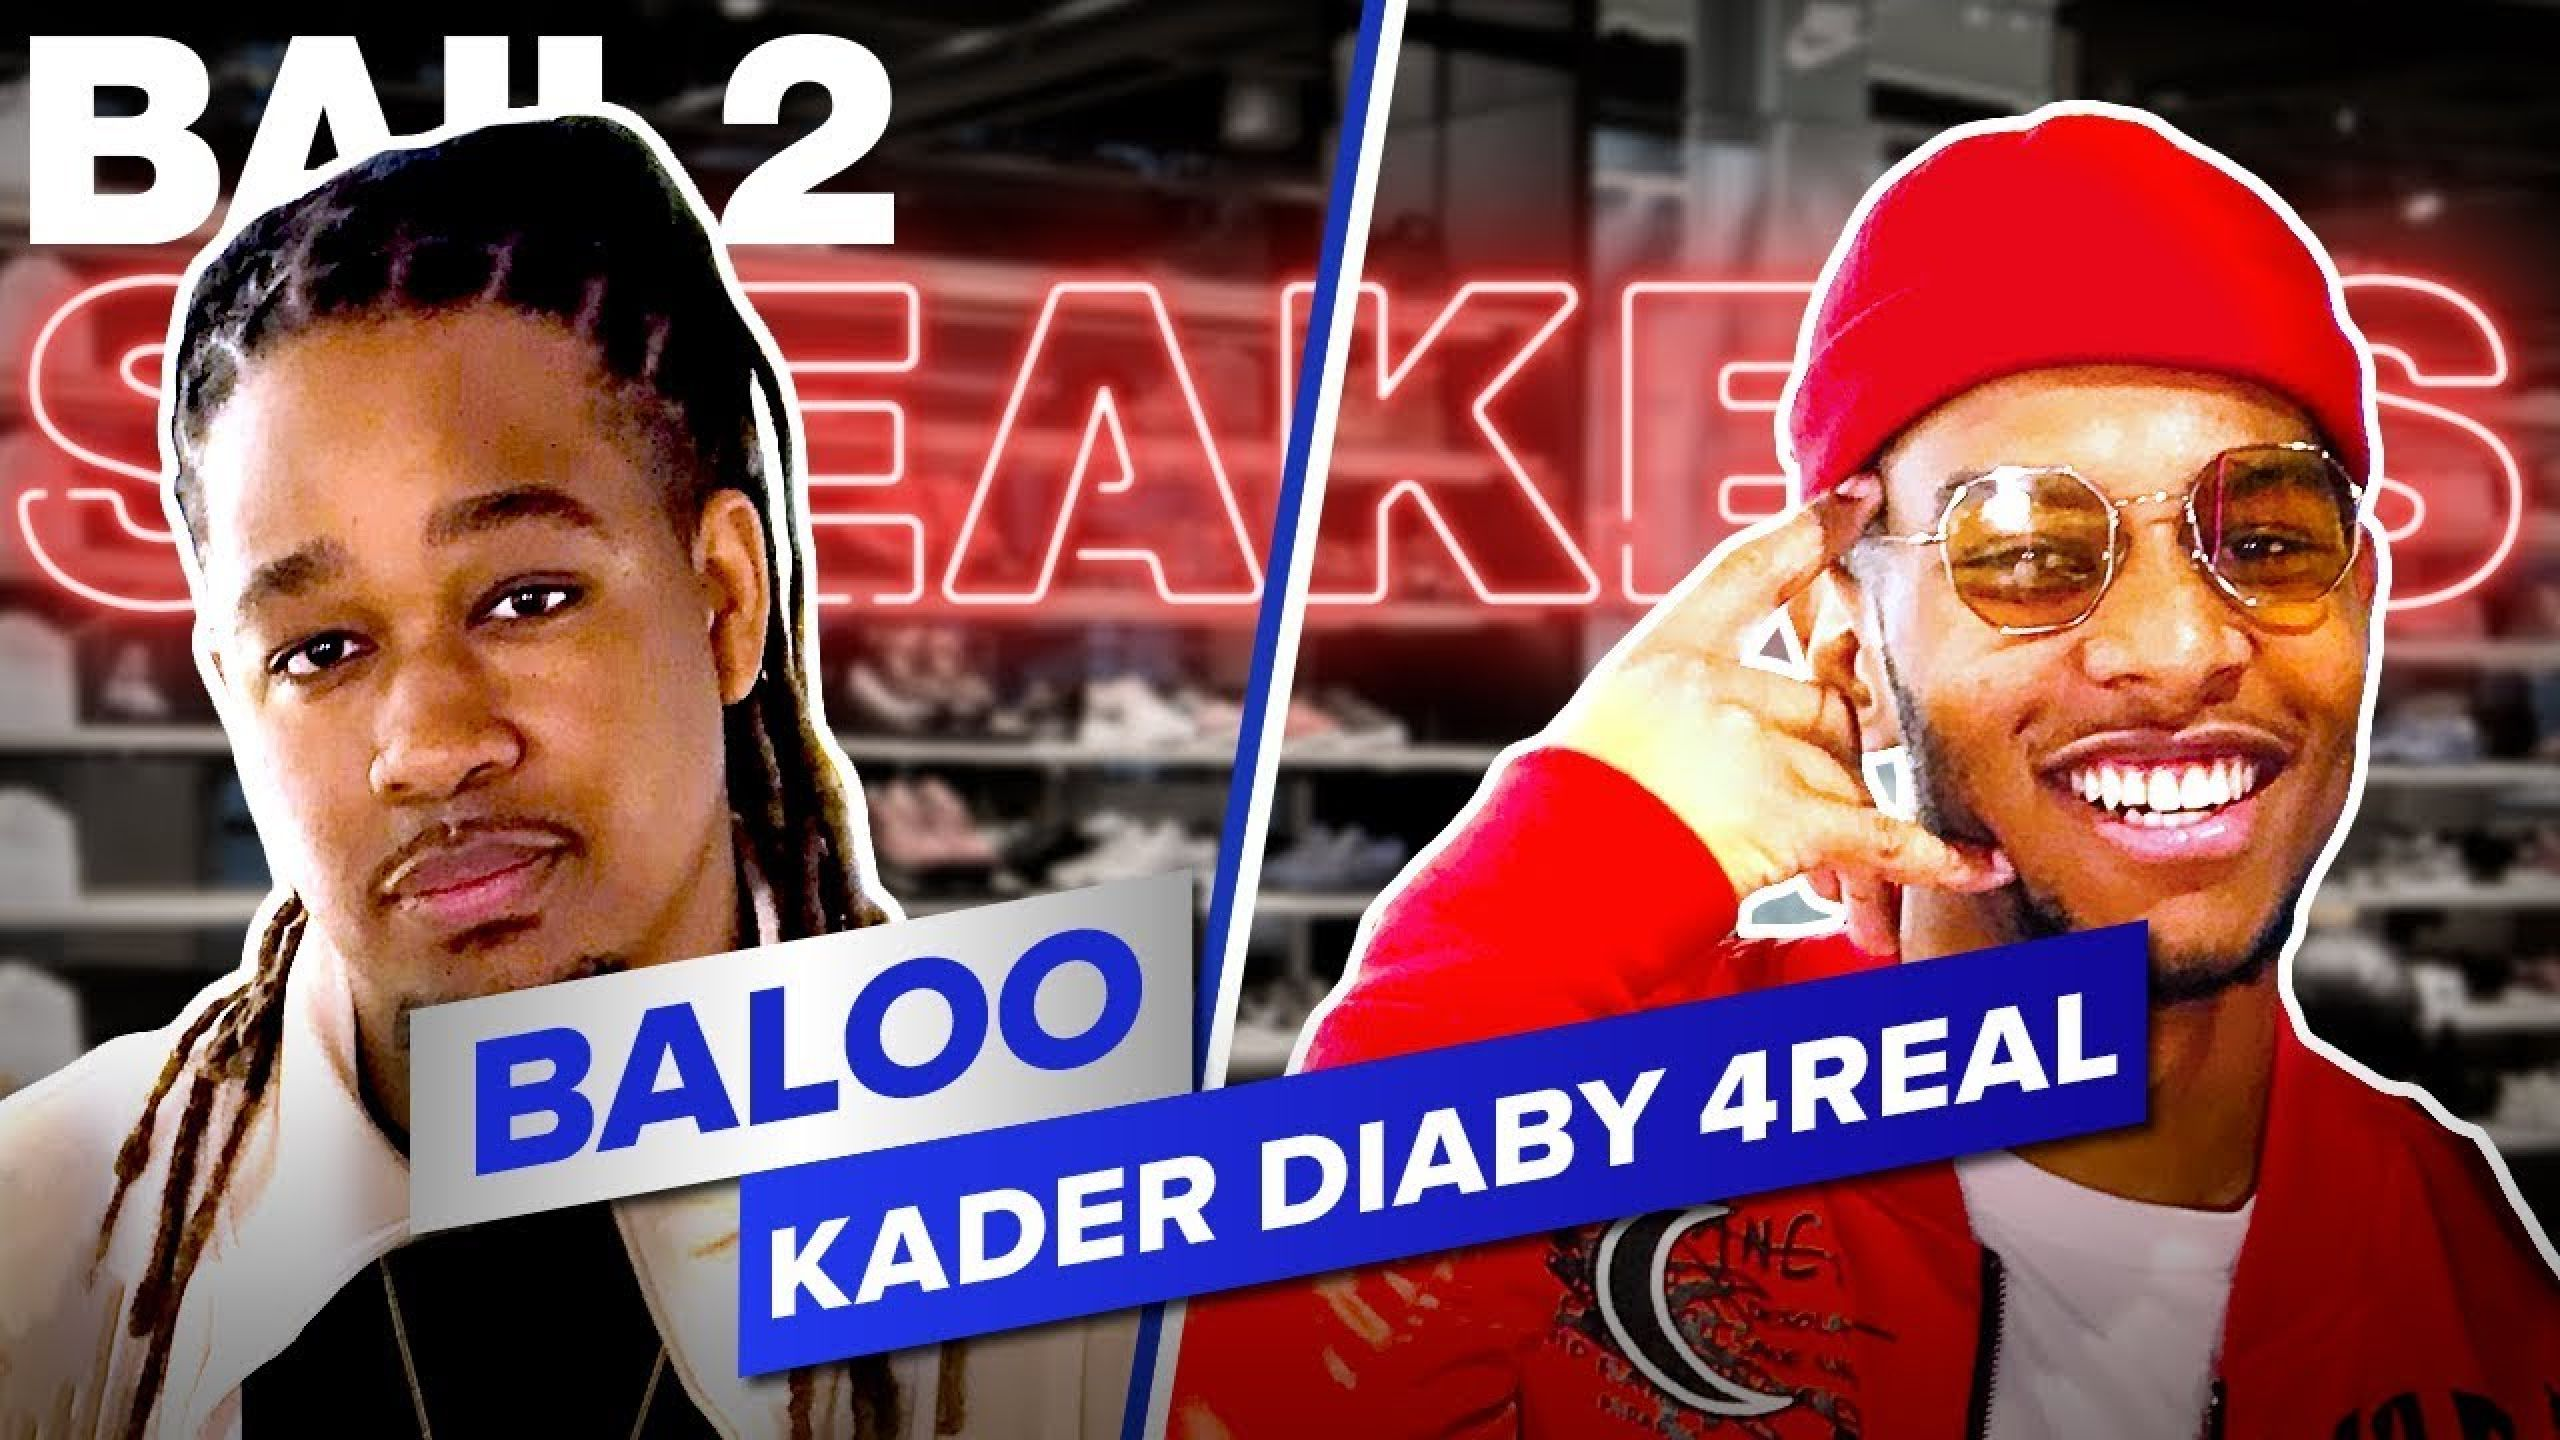 KADER DIABY 4REAL - Bail 2 Sneakers